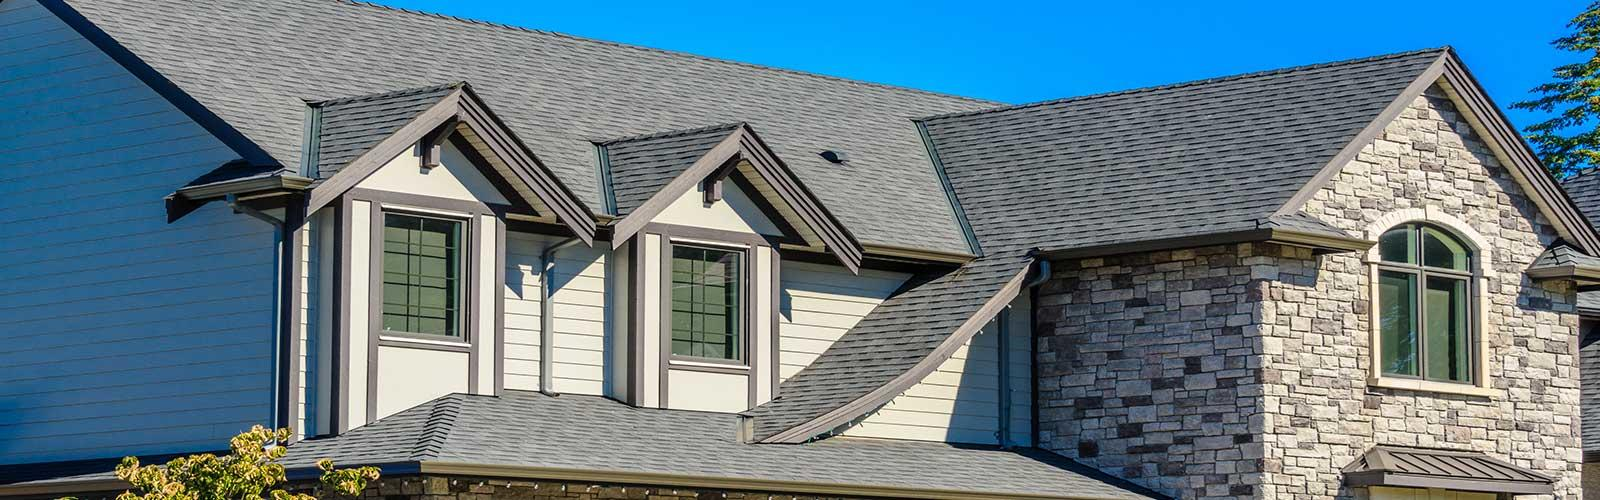 100 nu look home design roofing reviews home topside roofing u0026 siding nulook capital - Nu look home design ...